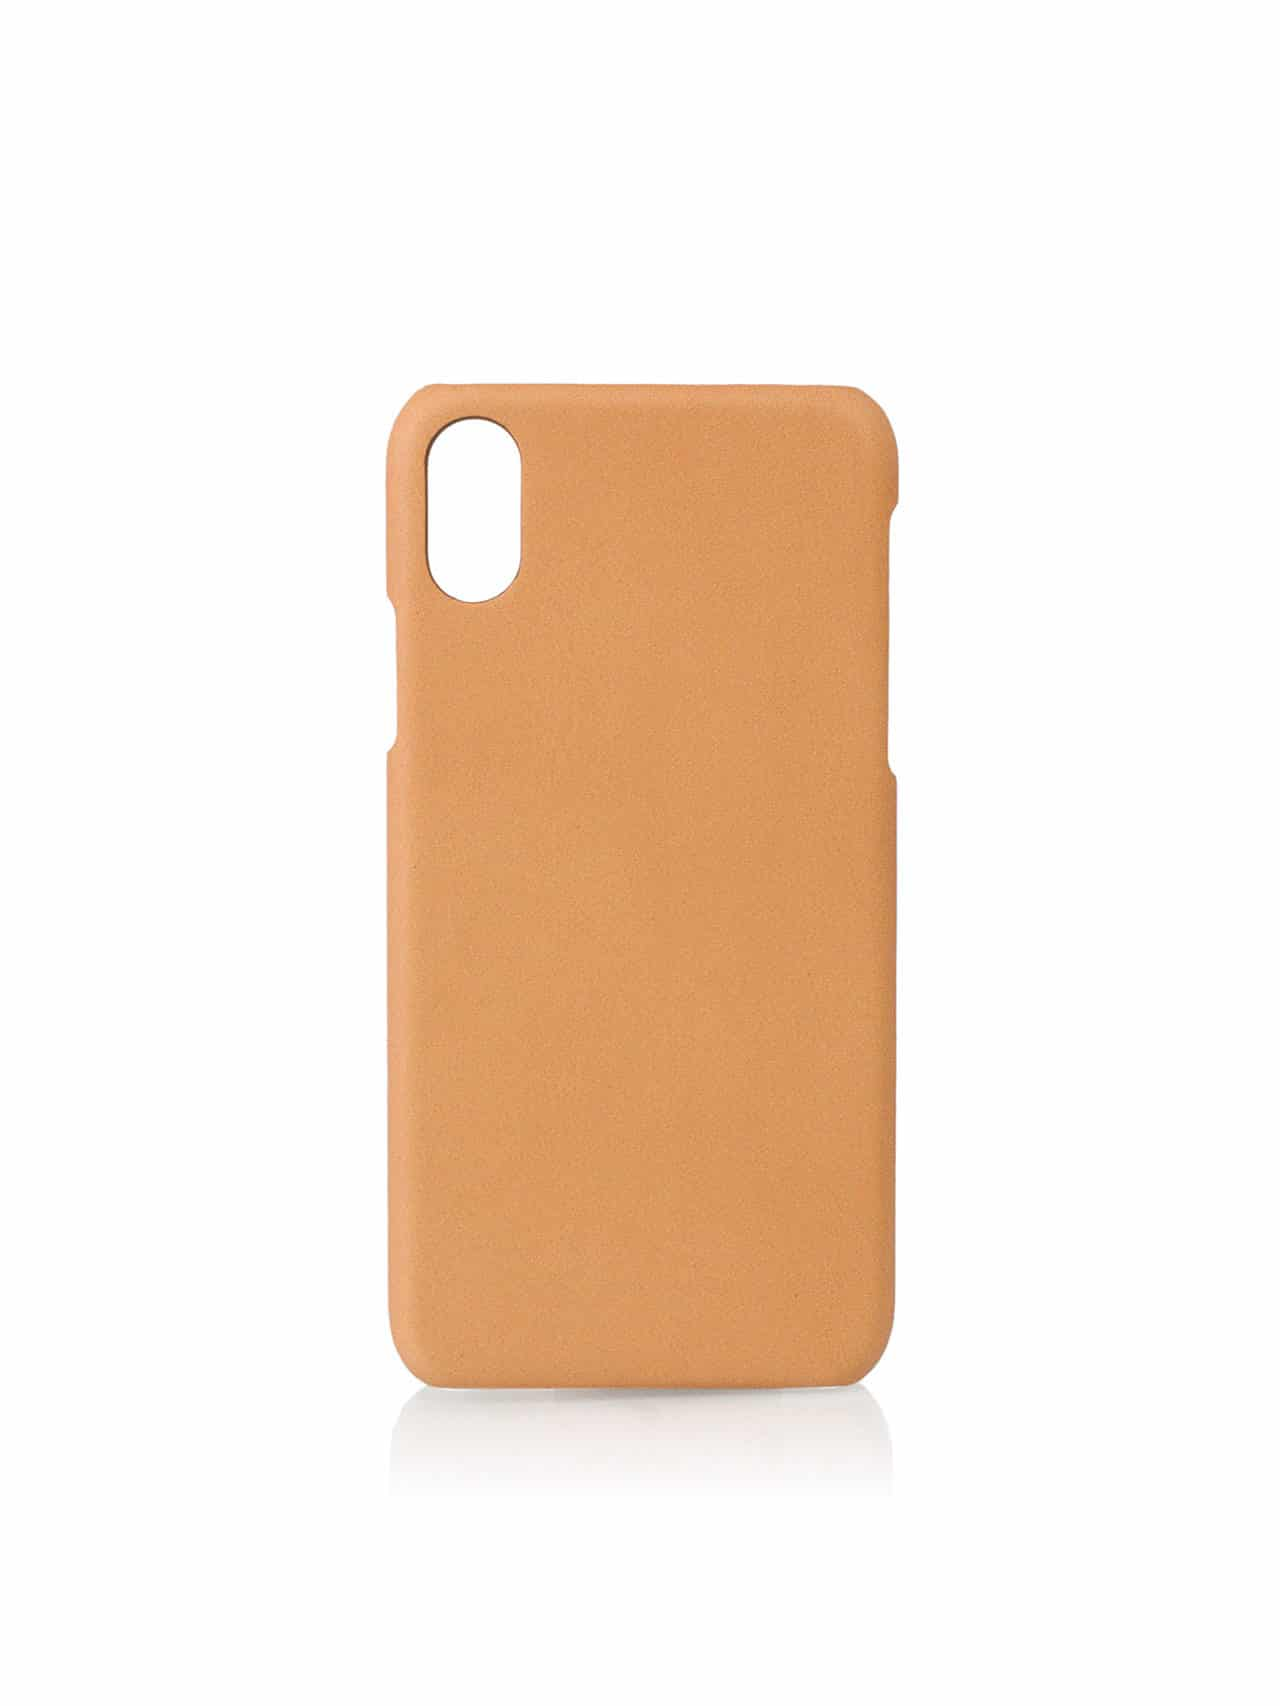 Iphone case X leather made in france